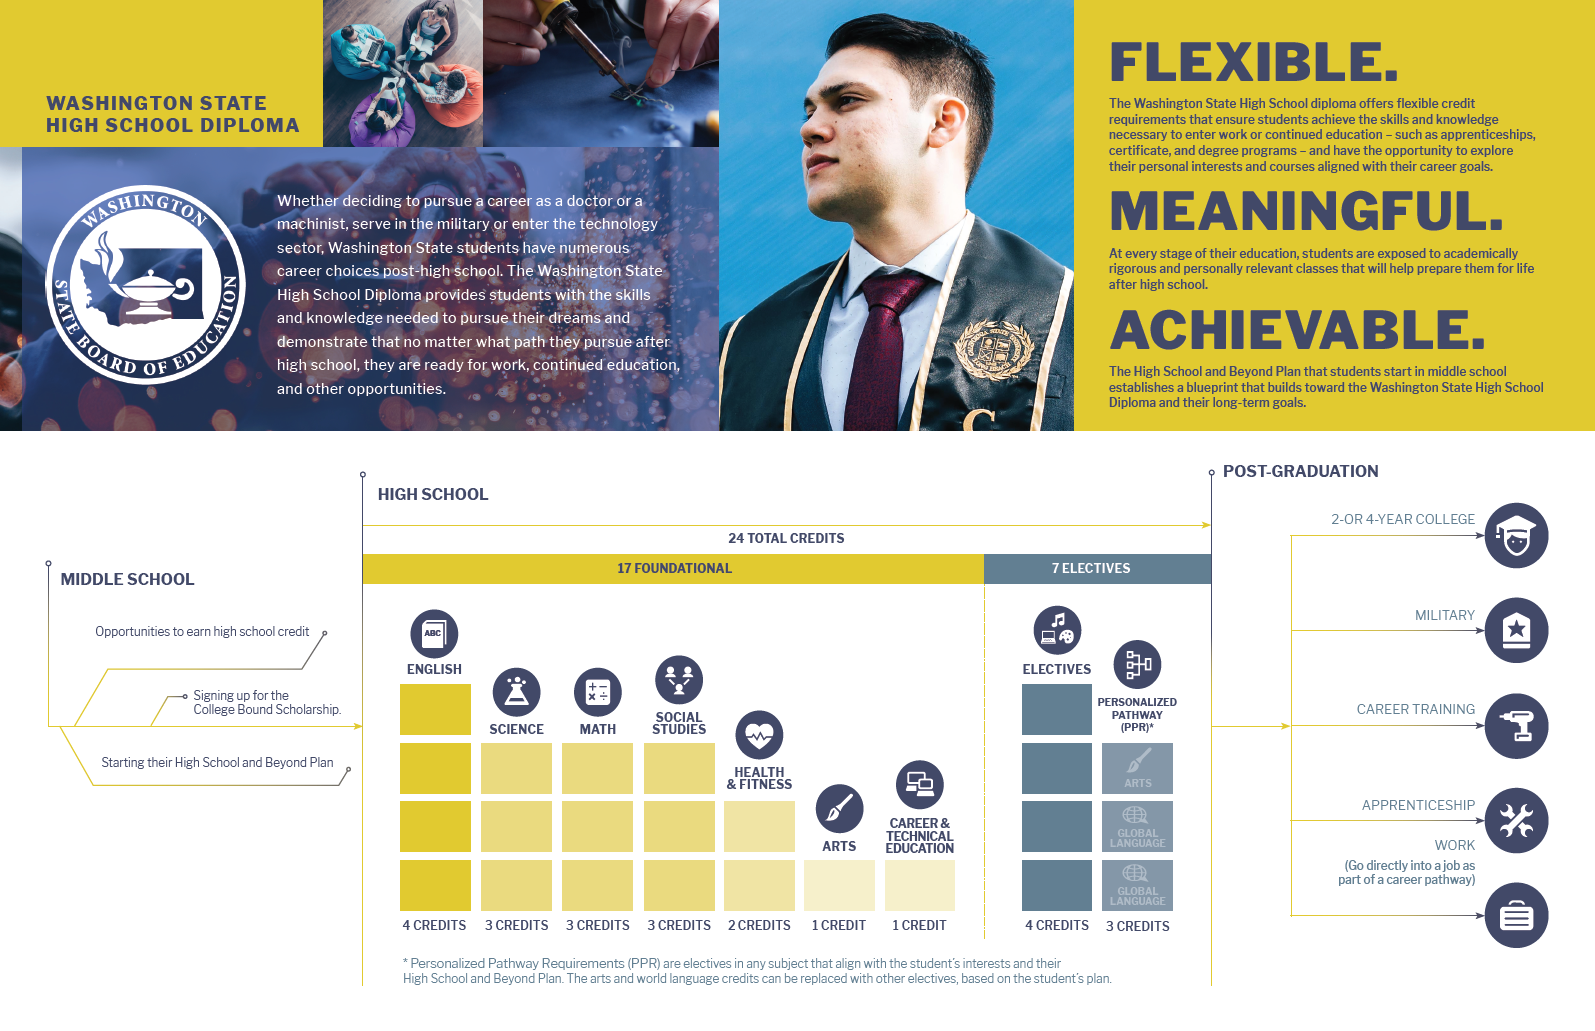 ADA accessible version of the infographic is available on the Graduation Requirements: Families page